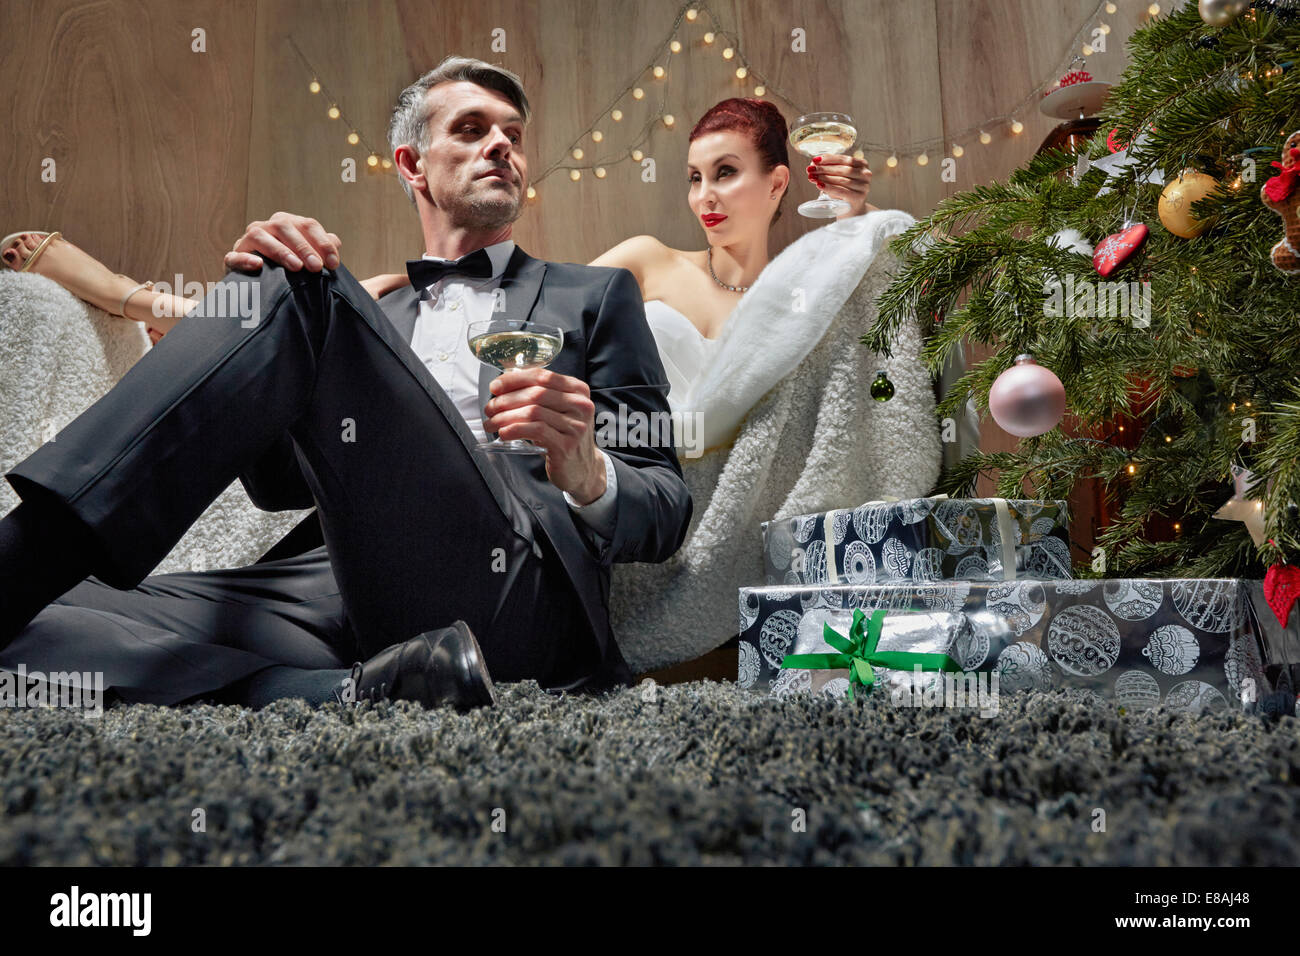 Mari et femme lounging by Christmas Tree Photo Stock